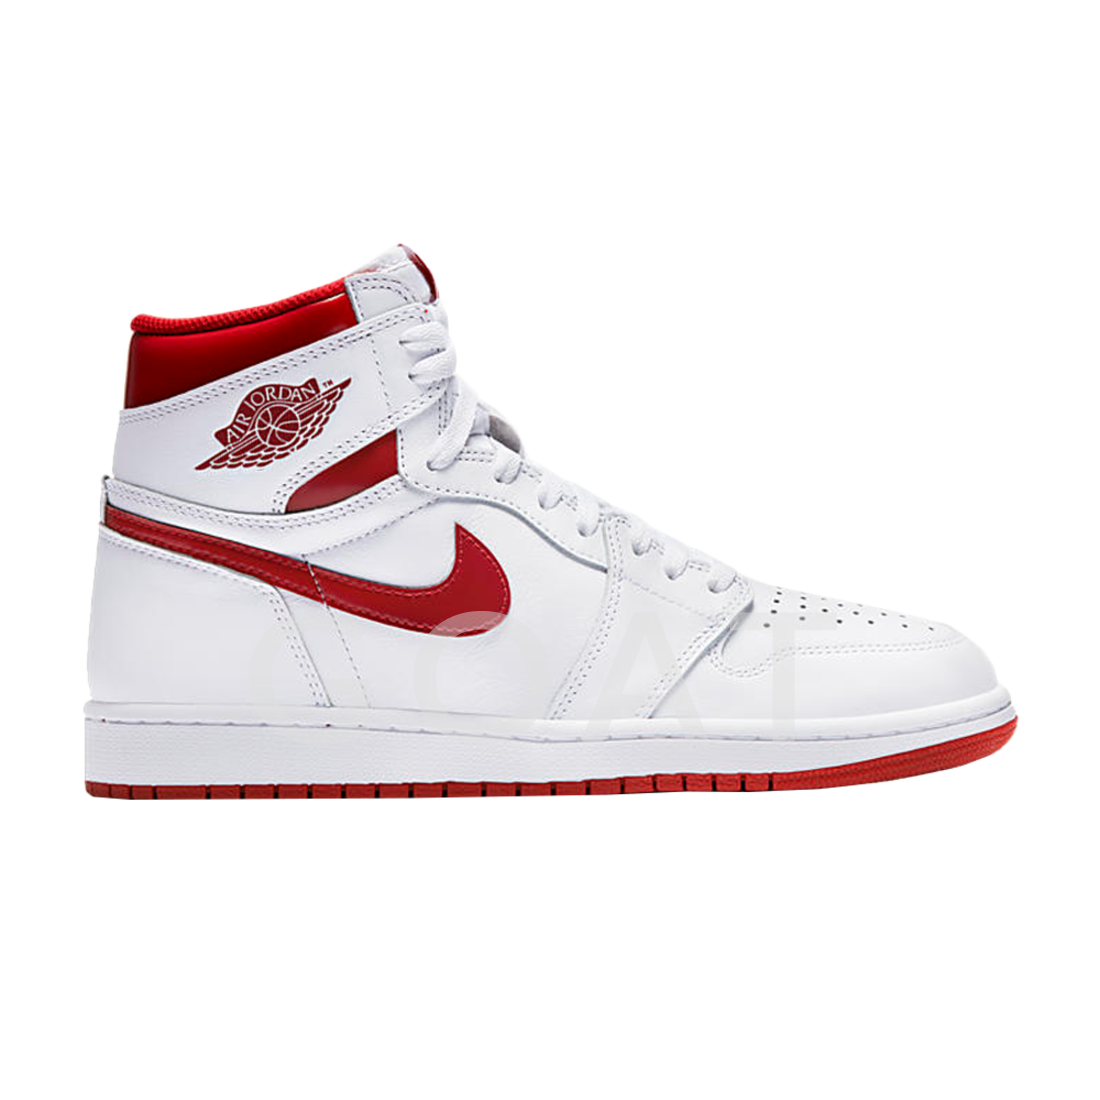 goat buy and sell authentic sneakers hype shoes sneakers fresh shoes hype shoes sneakers